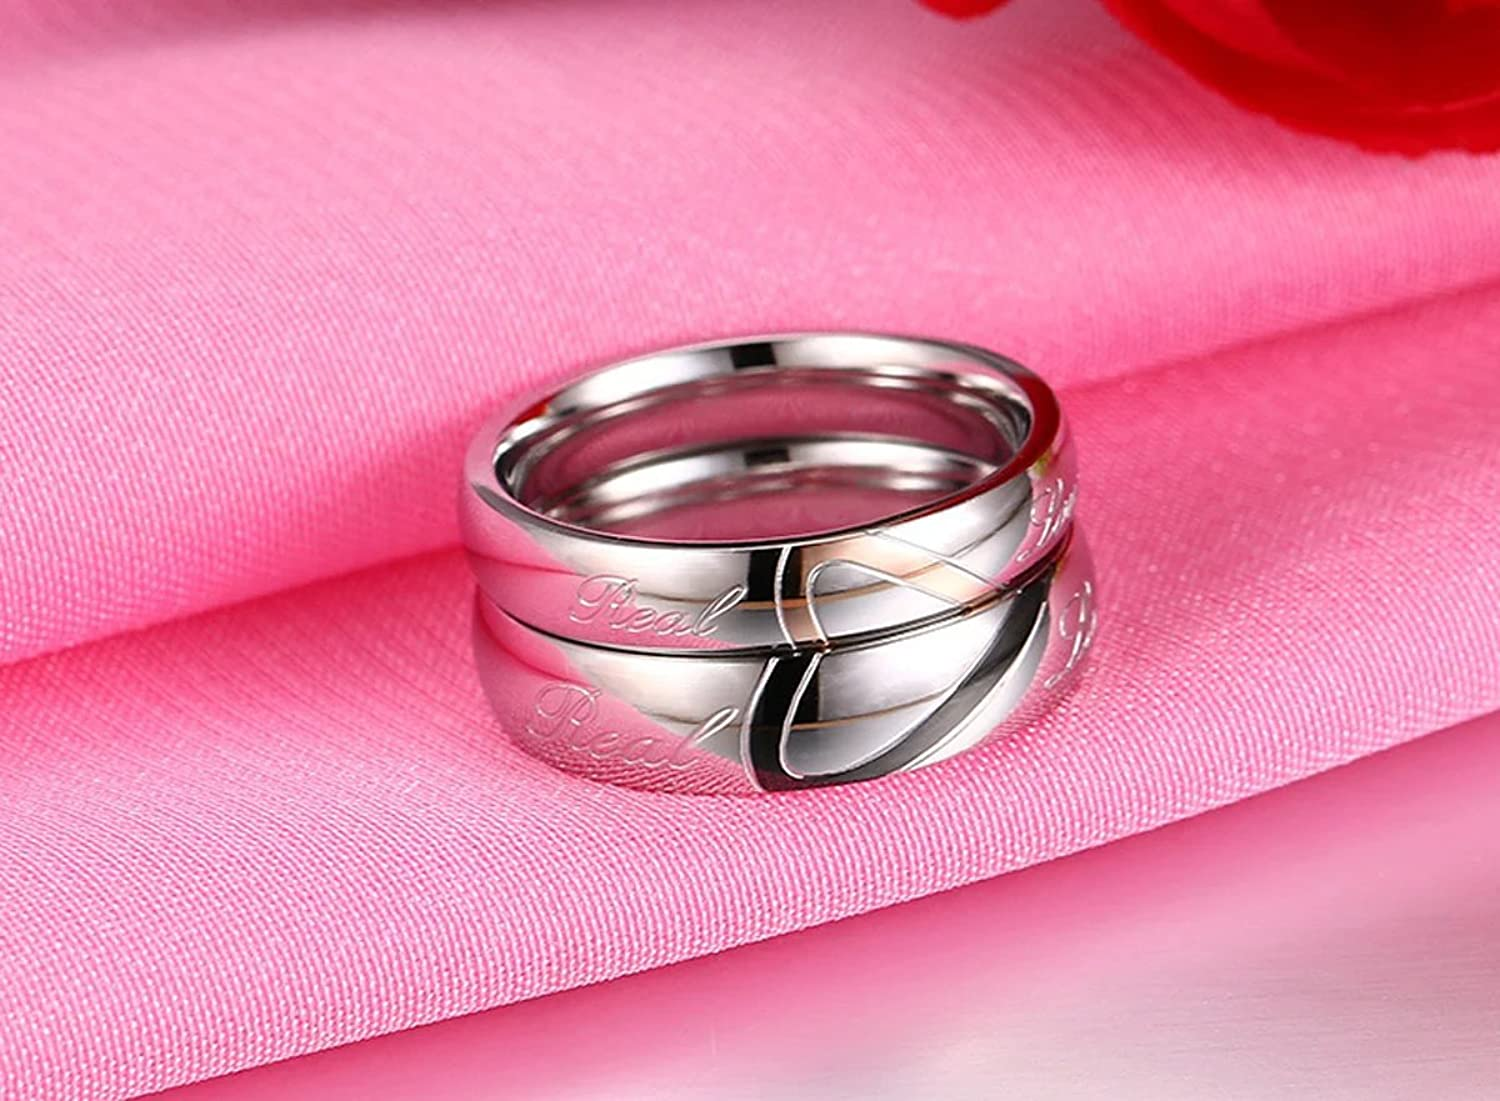 Amazon.com: DIB Stainless Steel His and Hers Heart Shaped Promise ...